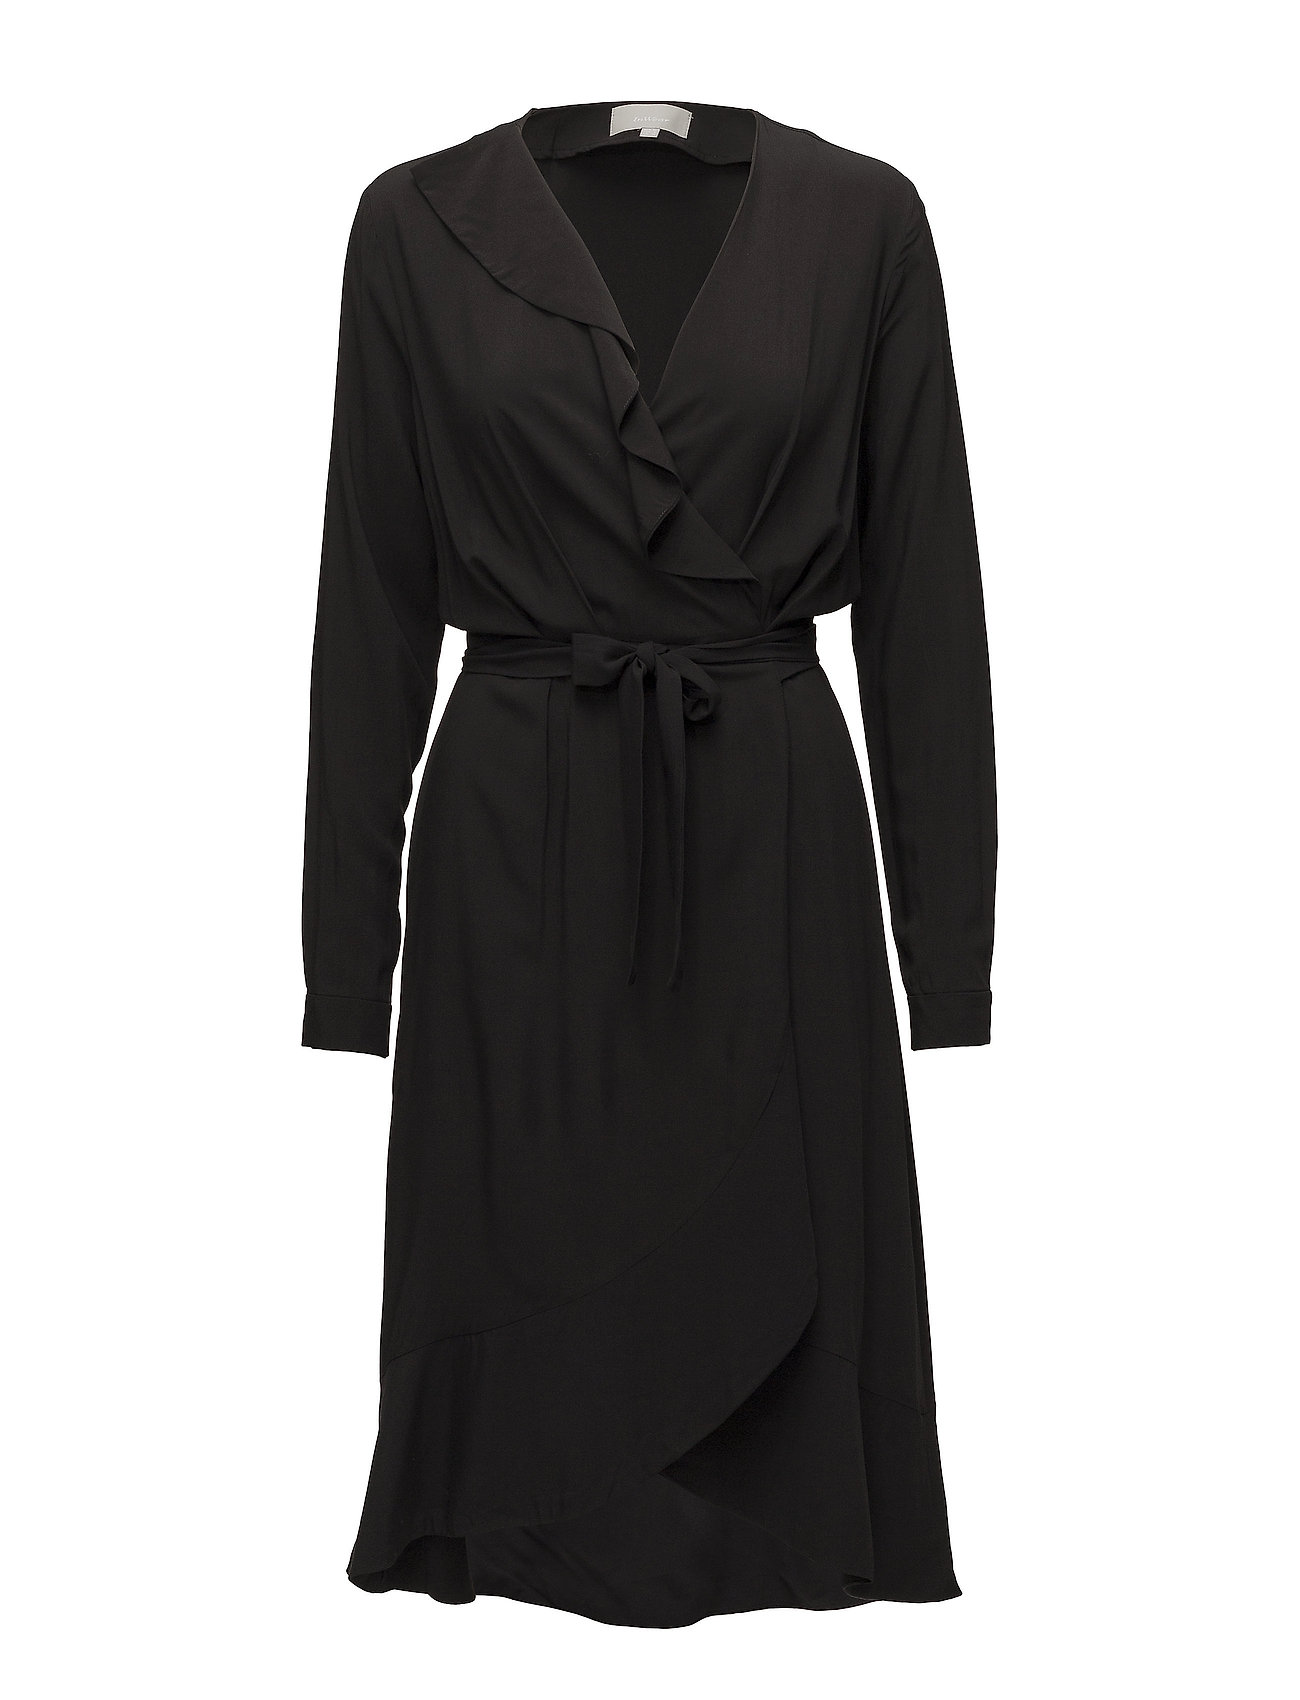 InWear Octavia Dress - BLACK